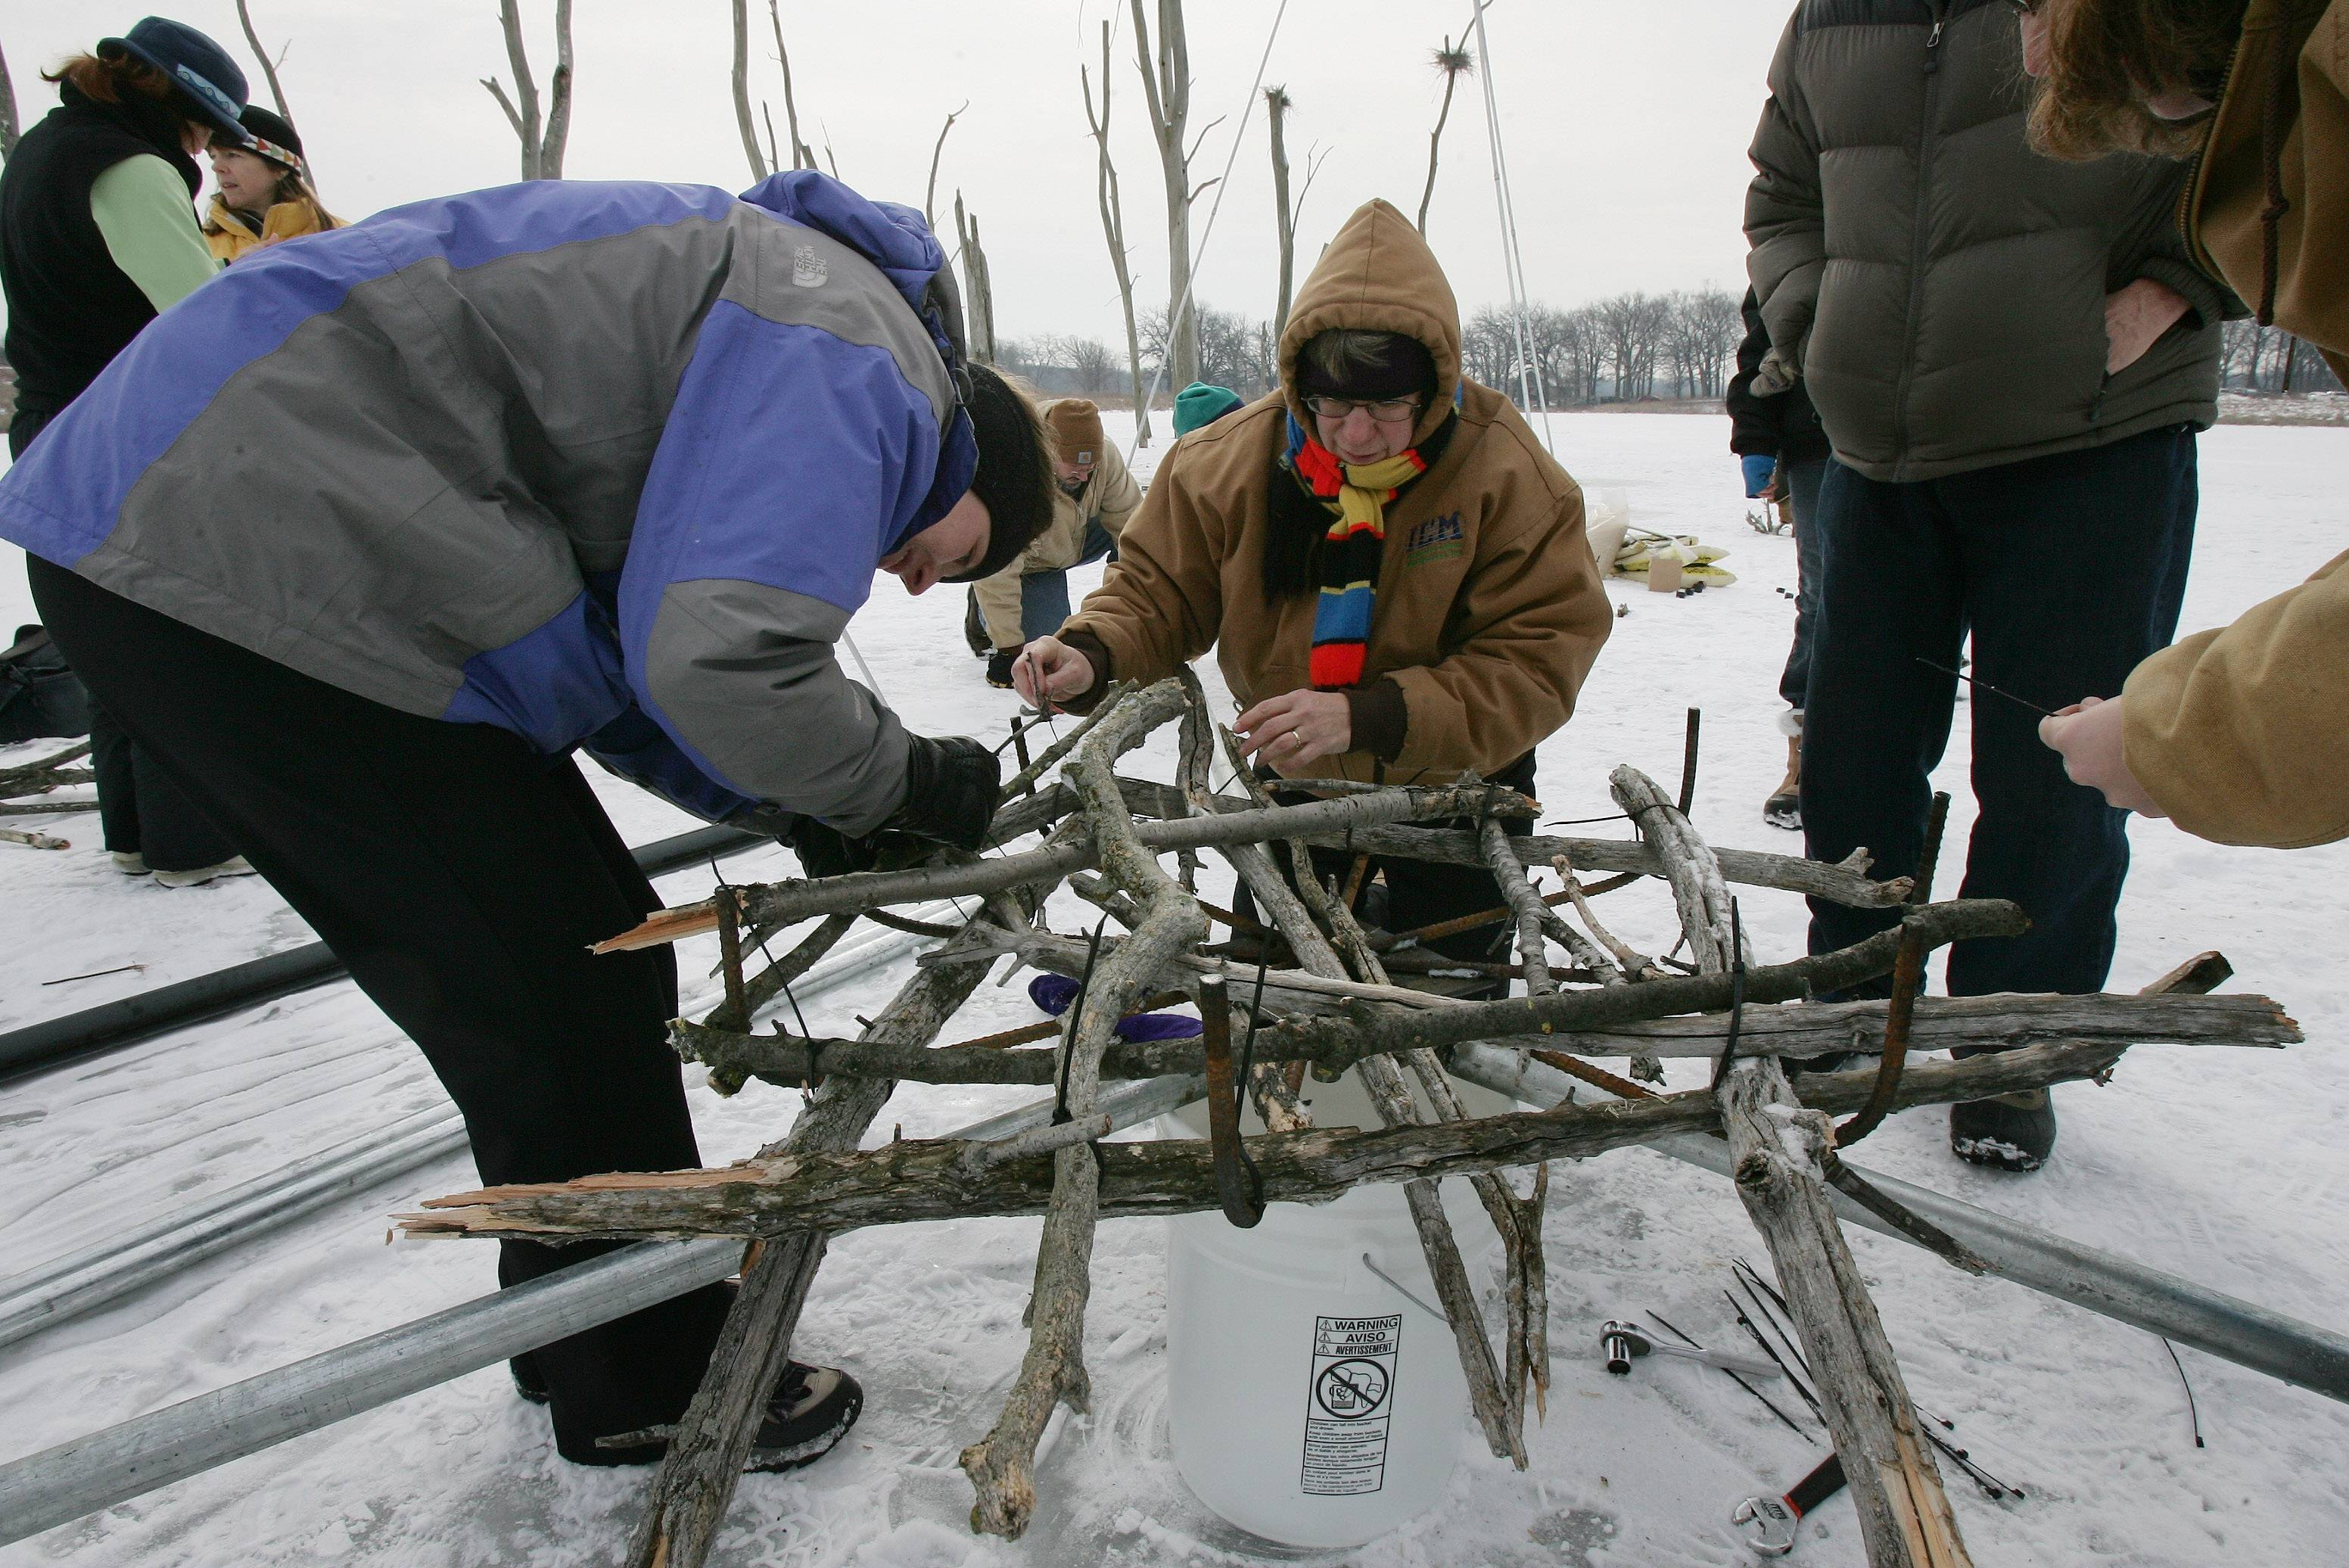 Giselle Bethke of Wilmette, left, and Sandy Kubillus of Waukegan tie loose sticks together to make a nest frame as volunteers and members of the Lake County Forest Preserve and the Lake County Audubon Society install great blue heron nesting platforms in 2010.